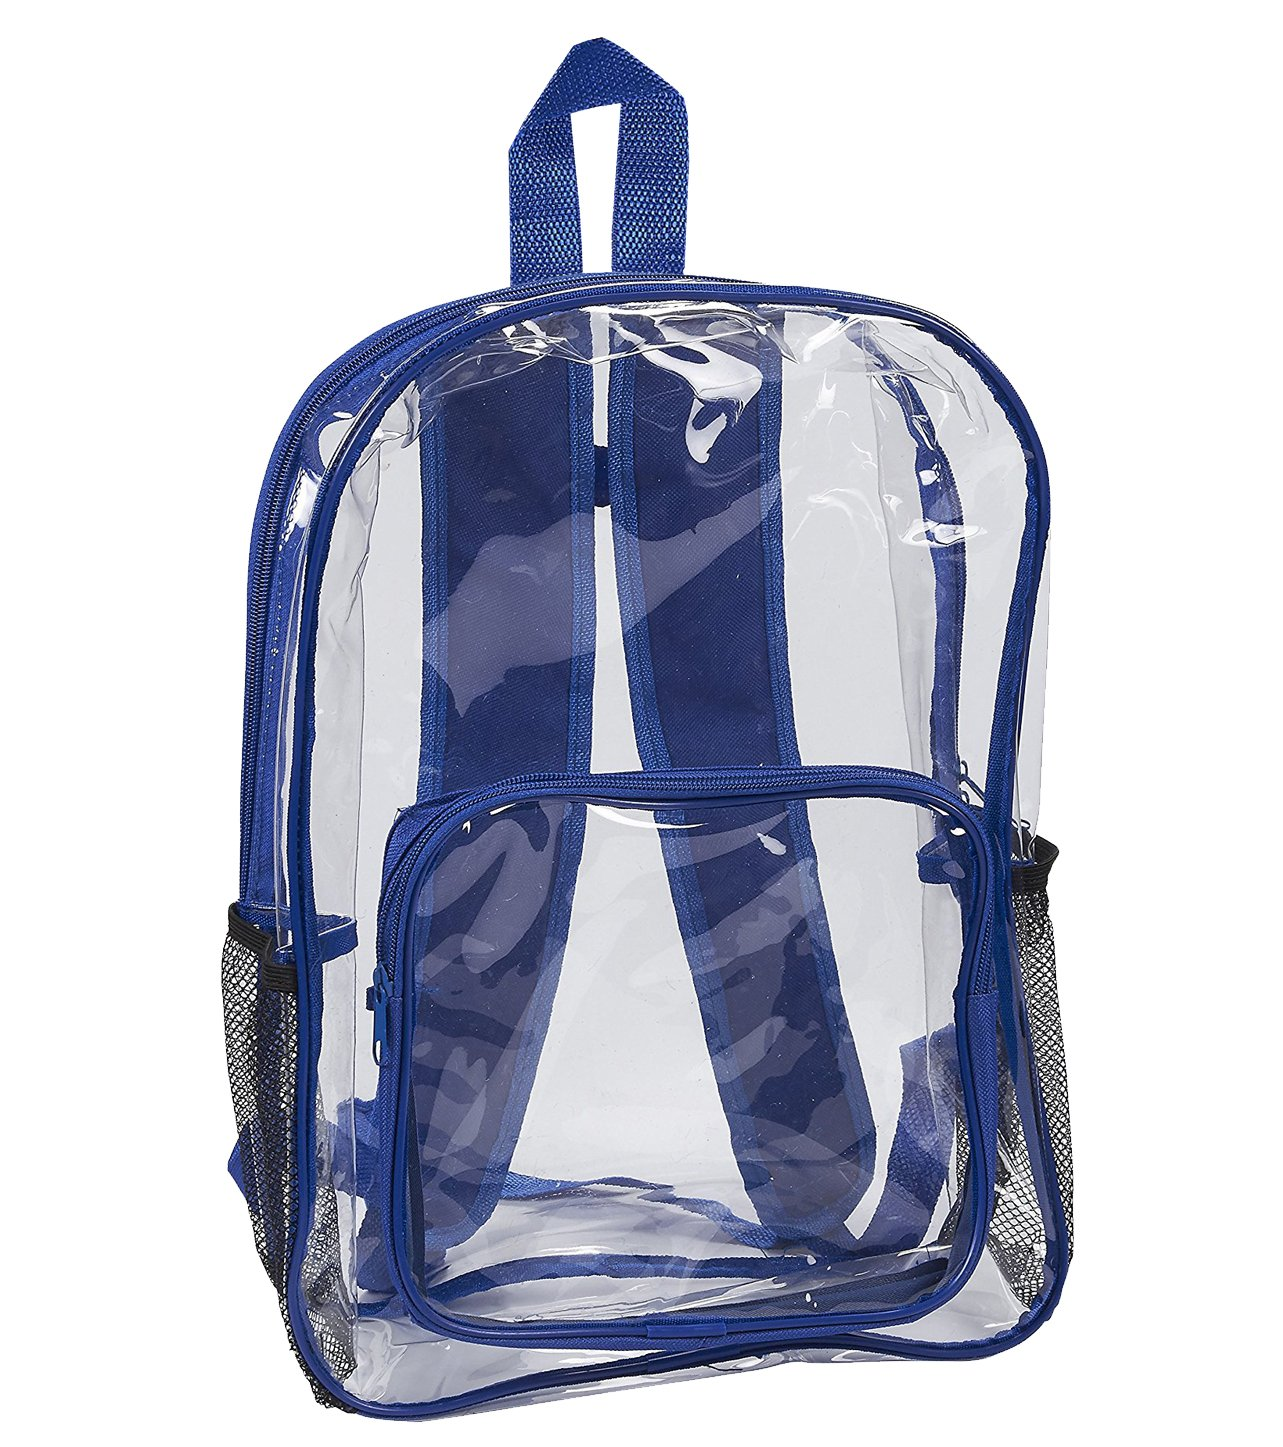 Clear Security Backpack - Waterproof Transparent Bag for Travel and Sports Events